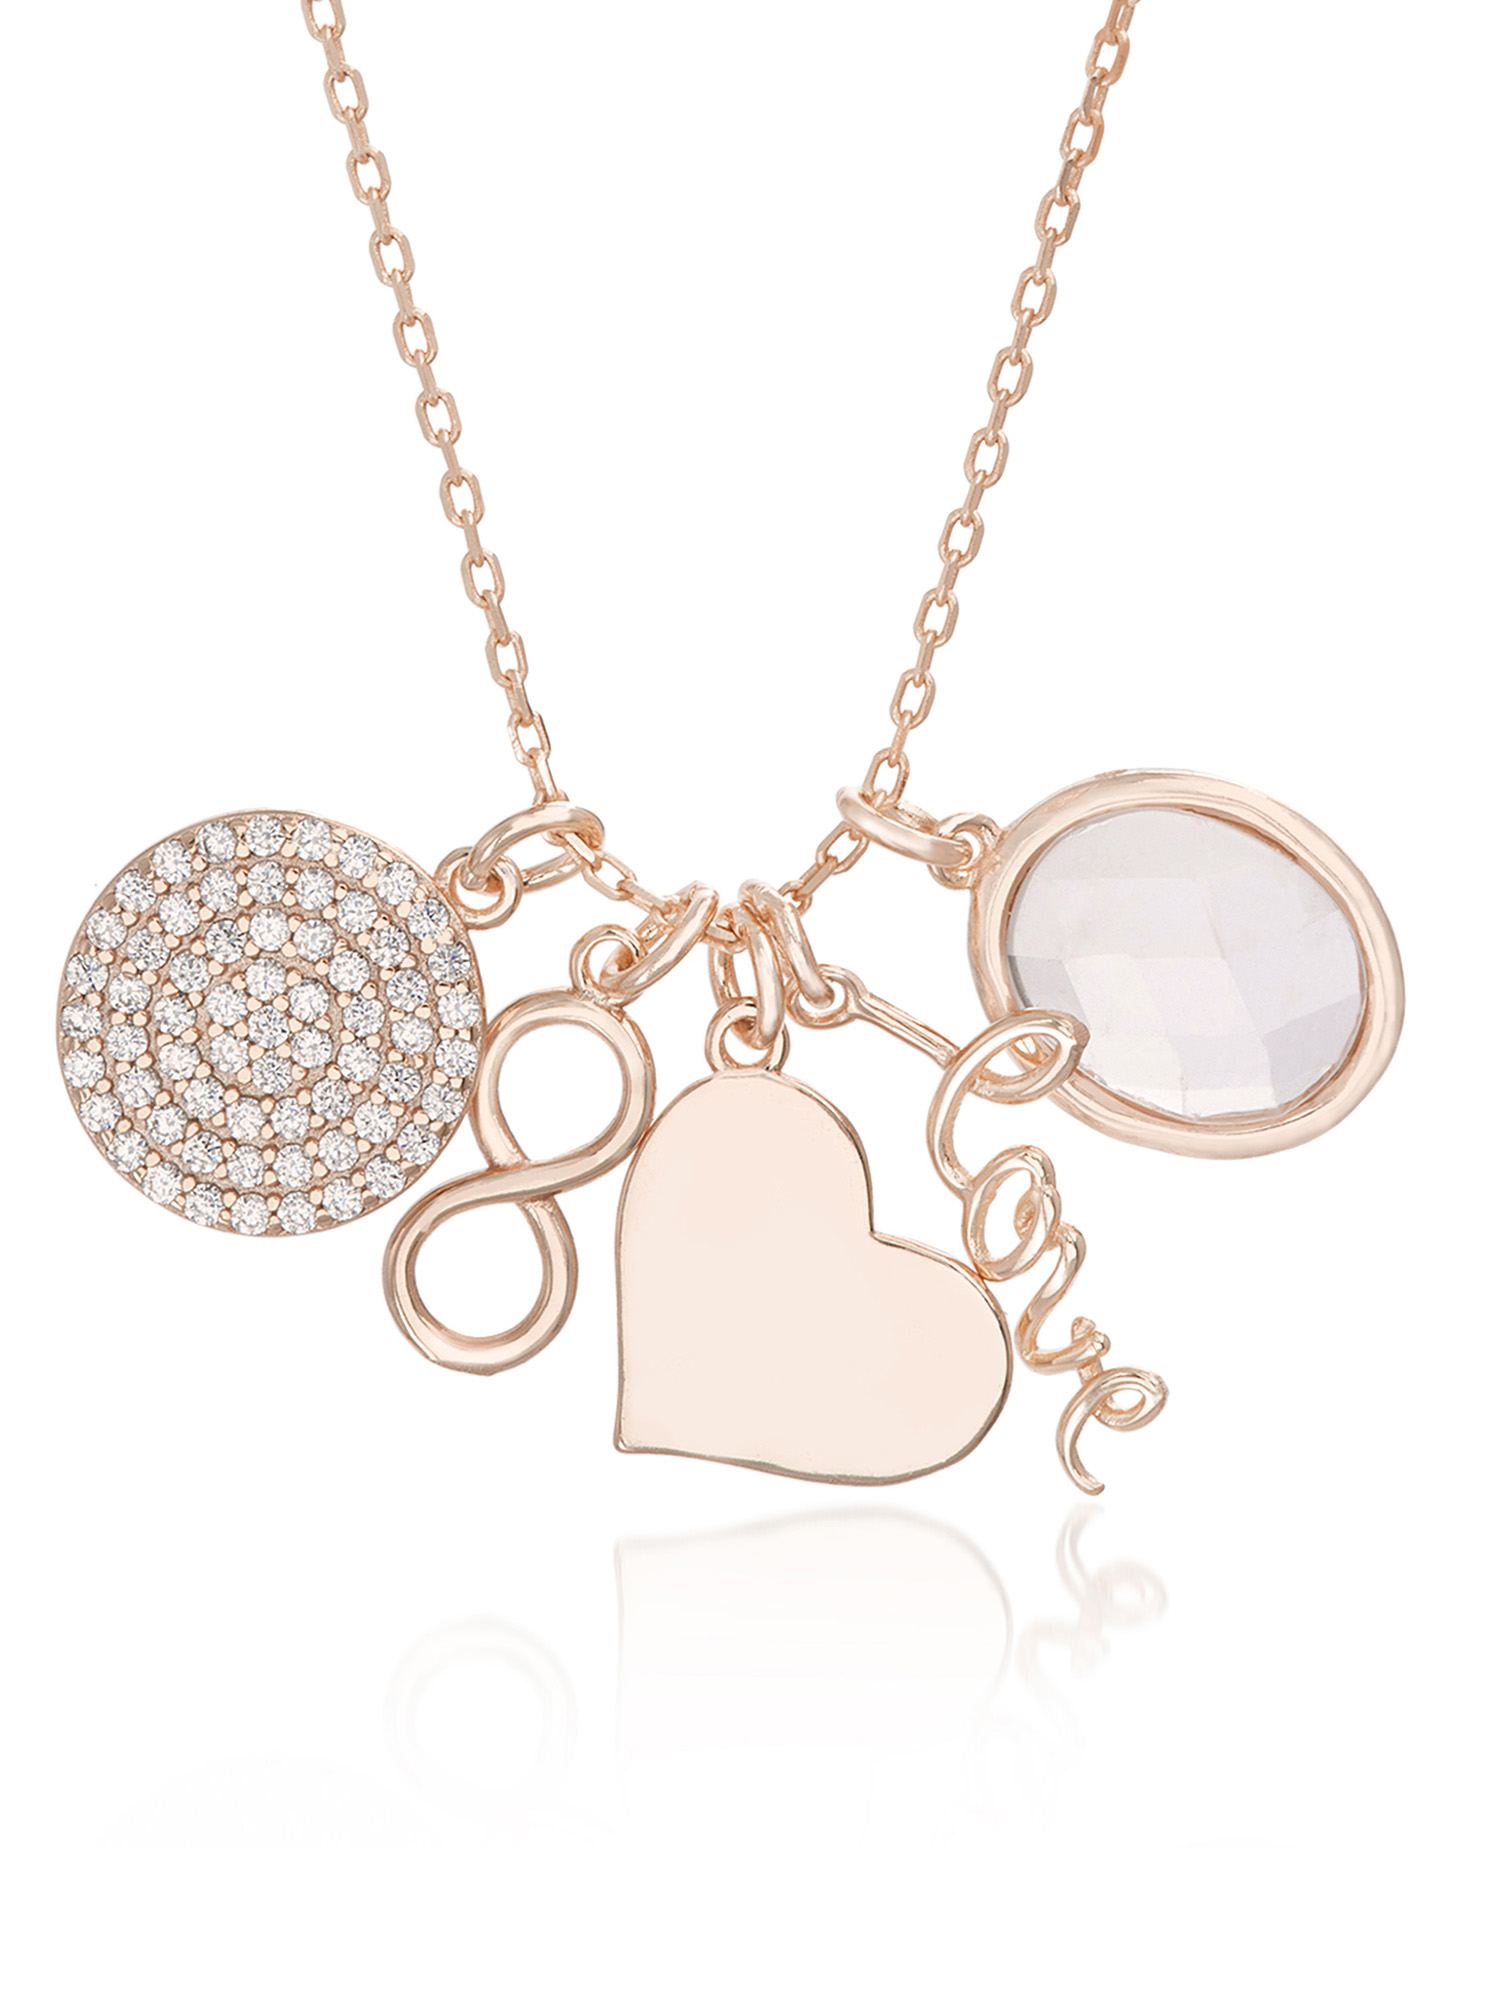 Lesa Michele Cubic Zirconia Disc, Infinity, Heart, Love & Oval Charm Necklace in Rose Gold over Sterling Silver